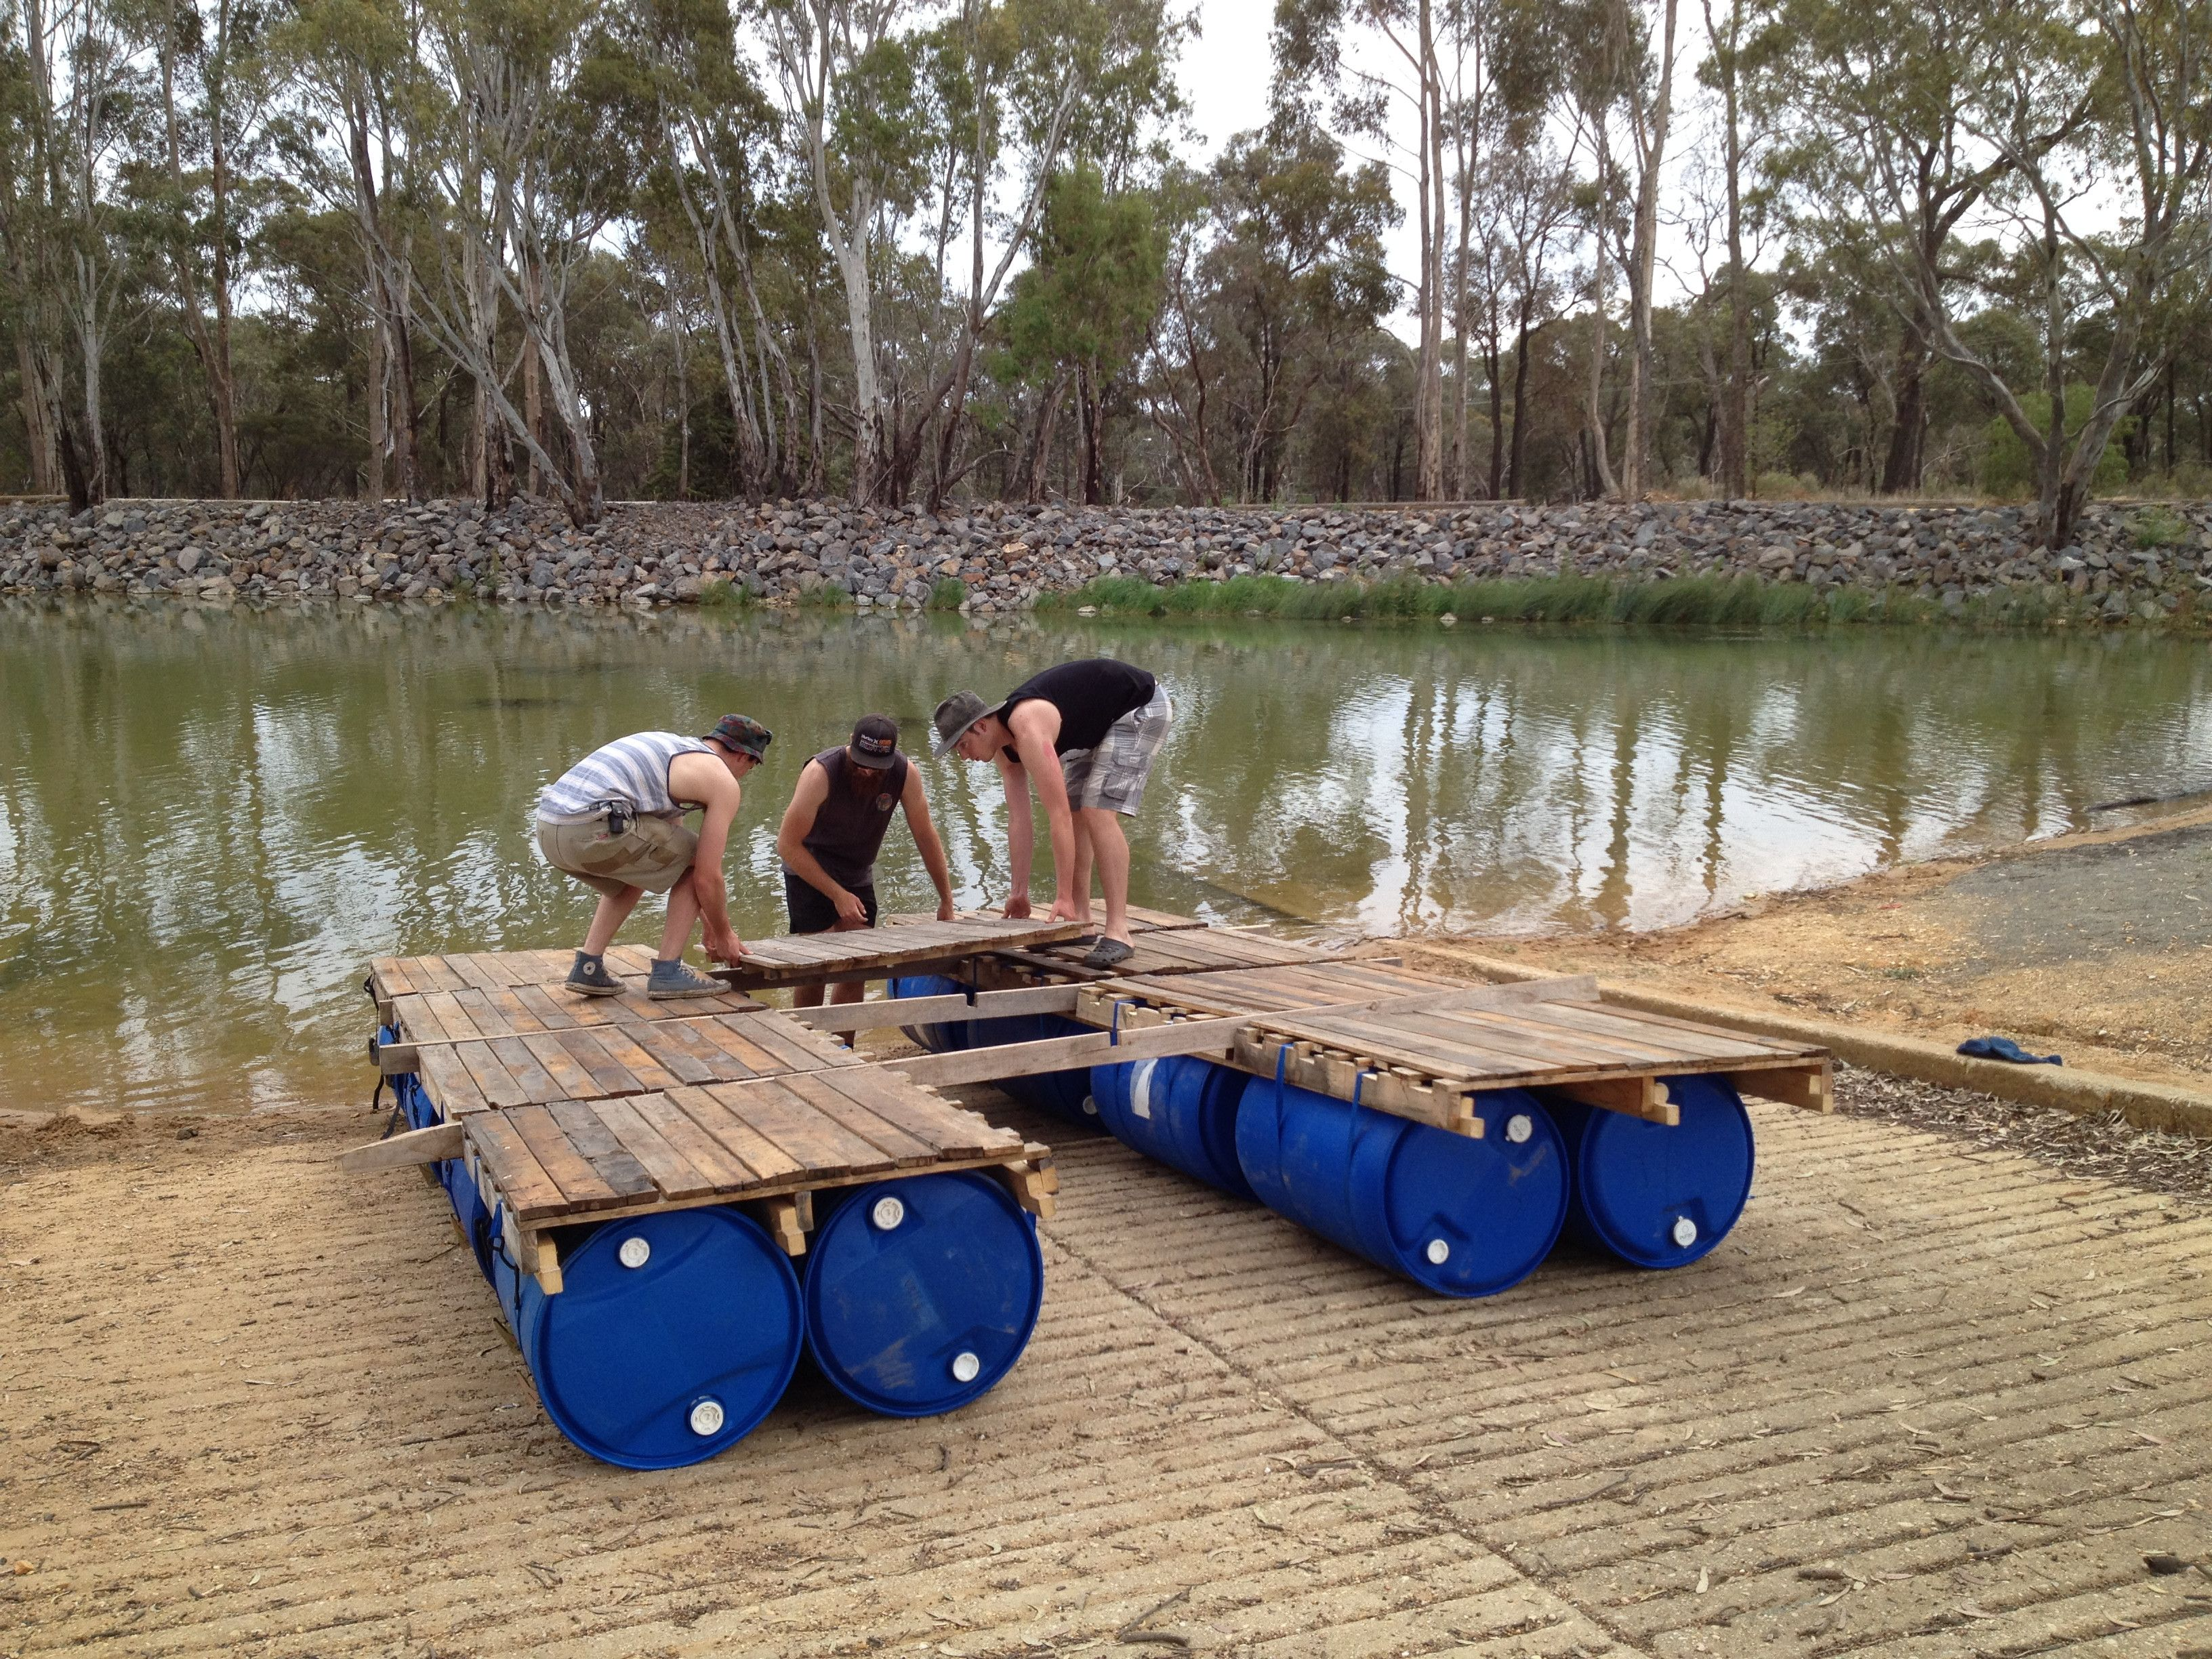 Decking Using Pallets Diy Portable Pontoon Using Old Pallets And Old Blue Drums